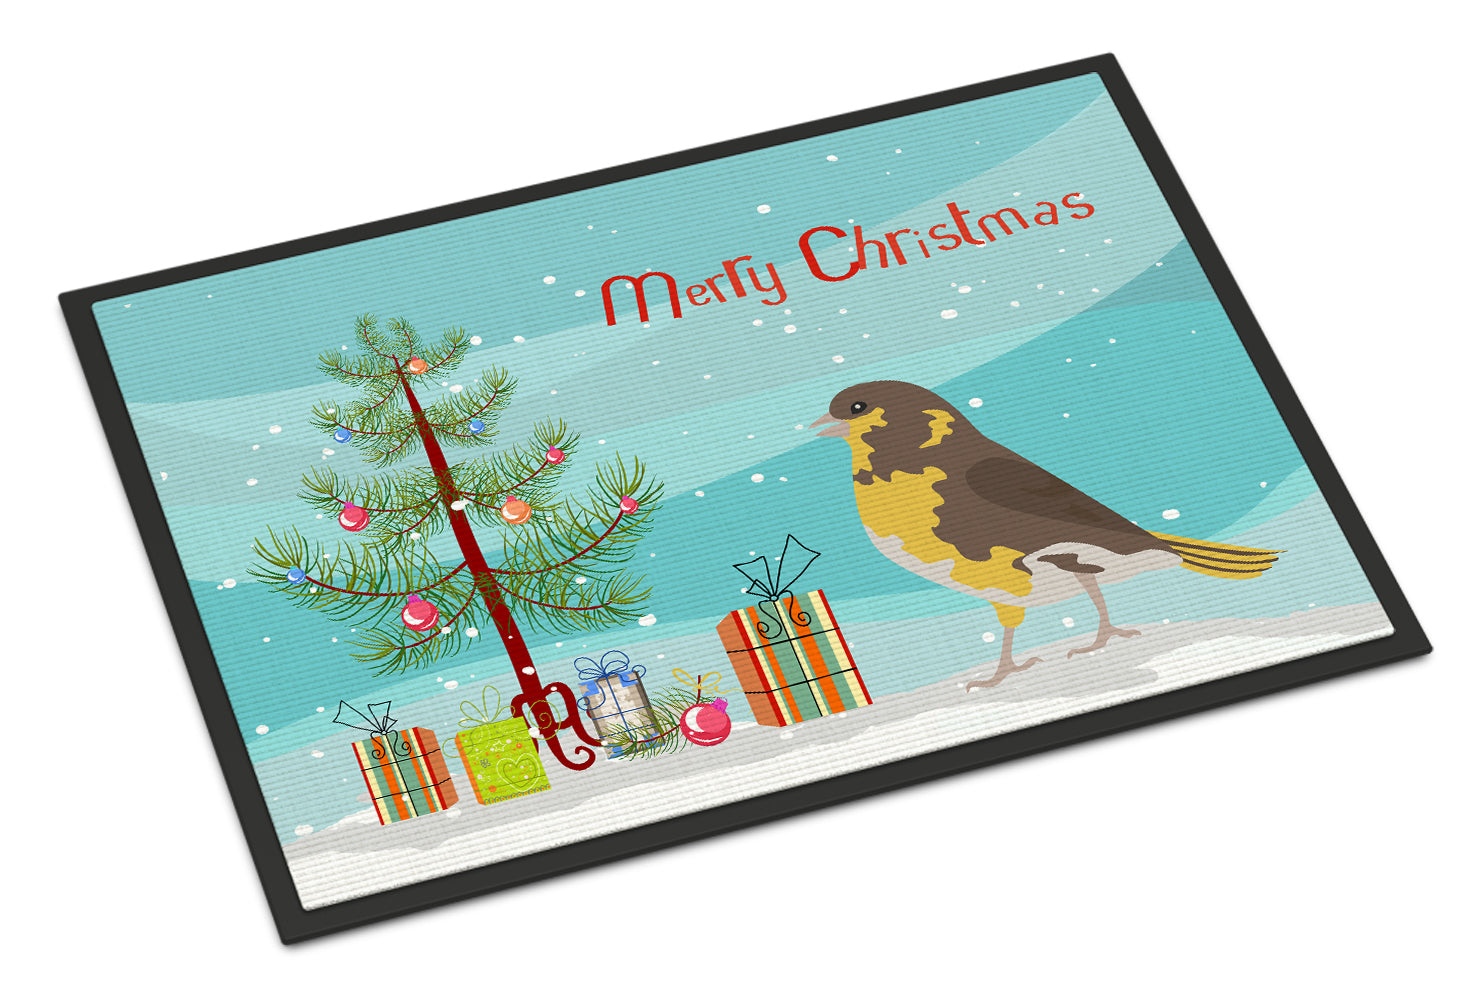 Spanish Canary Merry Christmas Indoor or Outdoor Mat 18x27 CK4485MAT by Caroline's Treasures